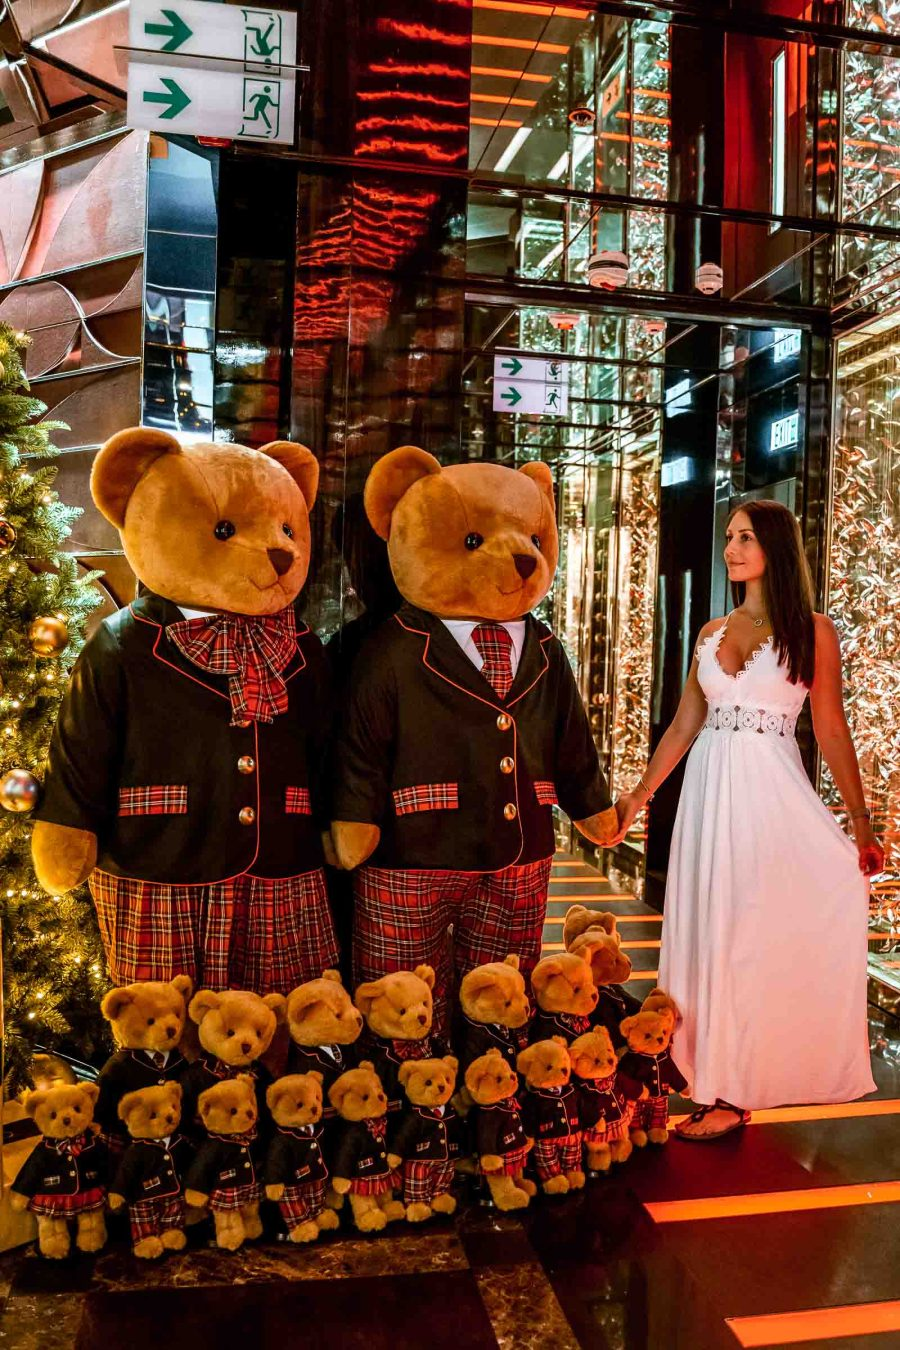 Girl in a white dress holding hands with a stuffed bear which is a part of the Christmas decoration